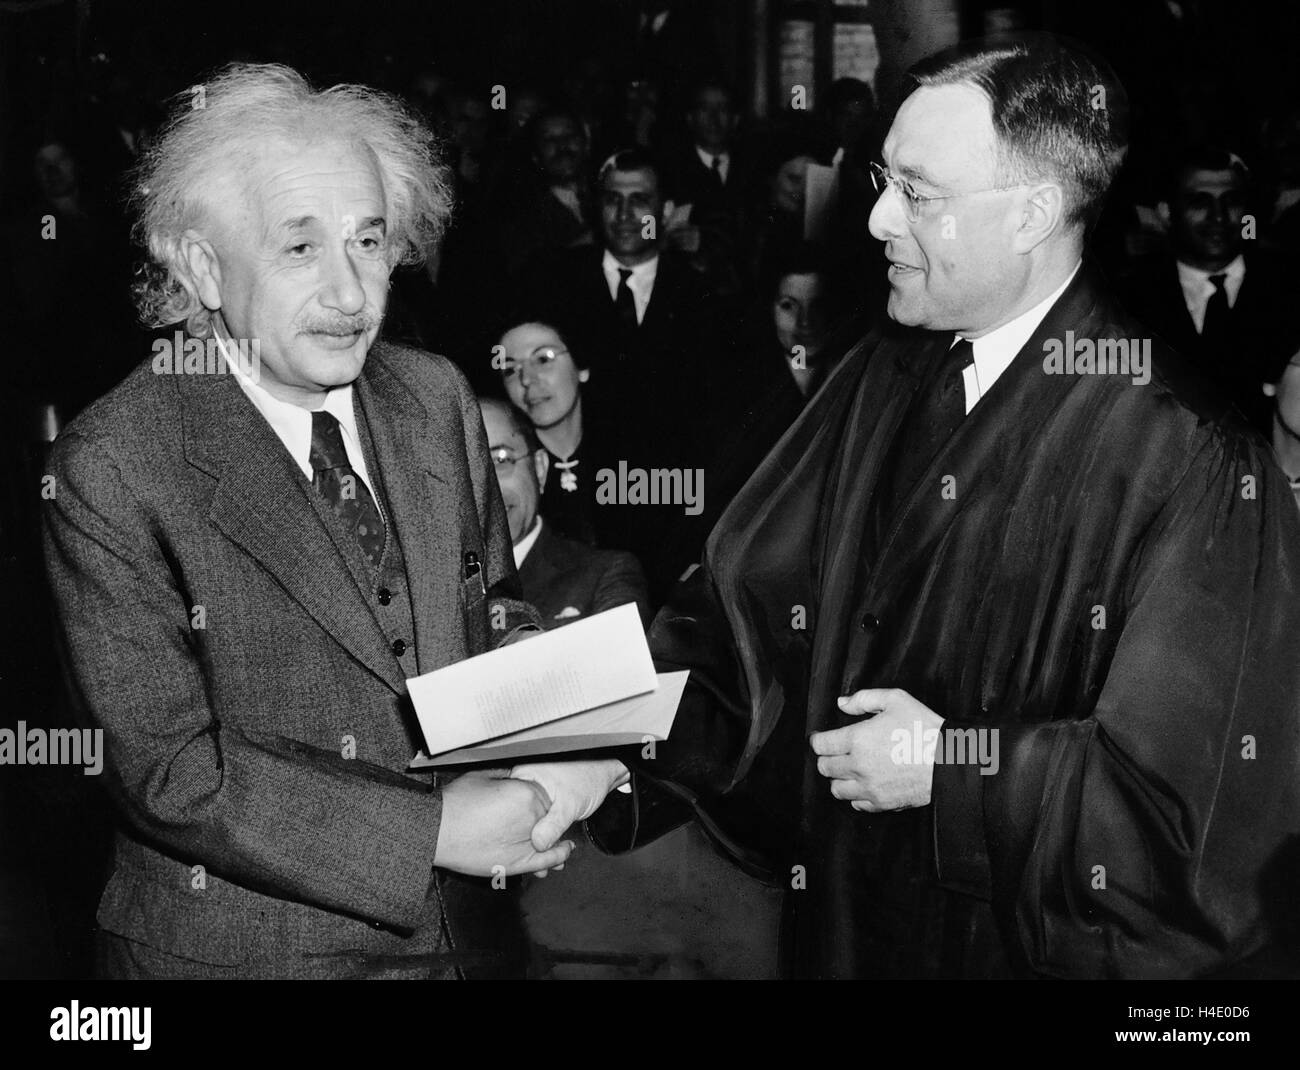 Albert Einstein (1879-1955) receiving his certificate of American citizenship from Judge Phillip Forman on October - Stock Image